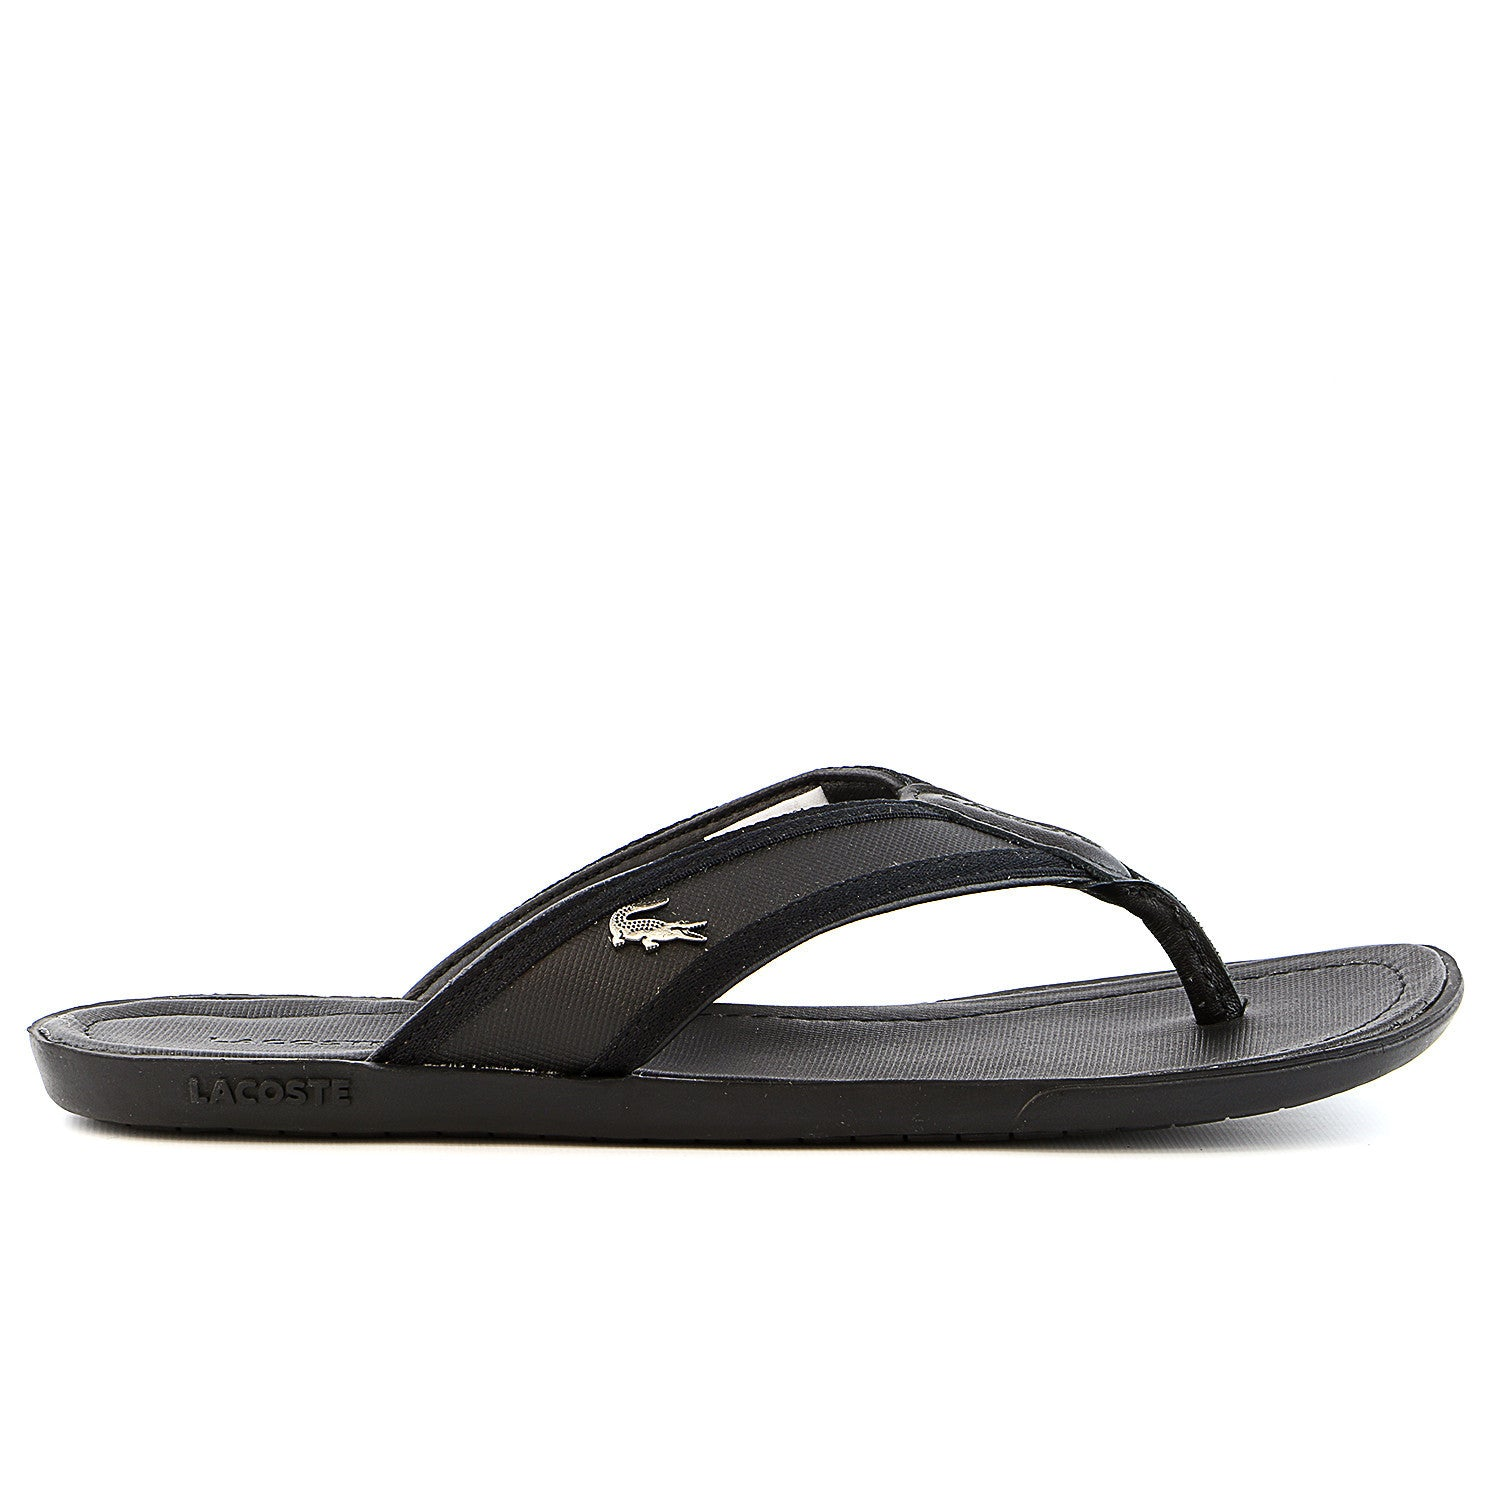 e1b837a2c26 Lacoste Carros 6 Leather Flip Flop Thong Sandal - Black - Mens ...